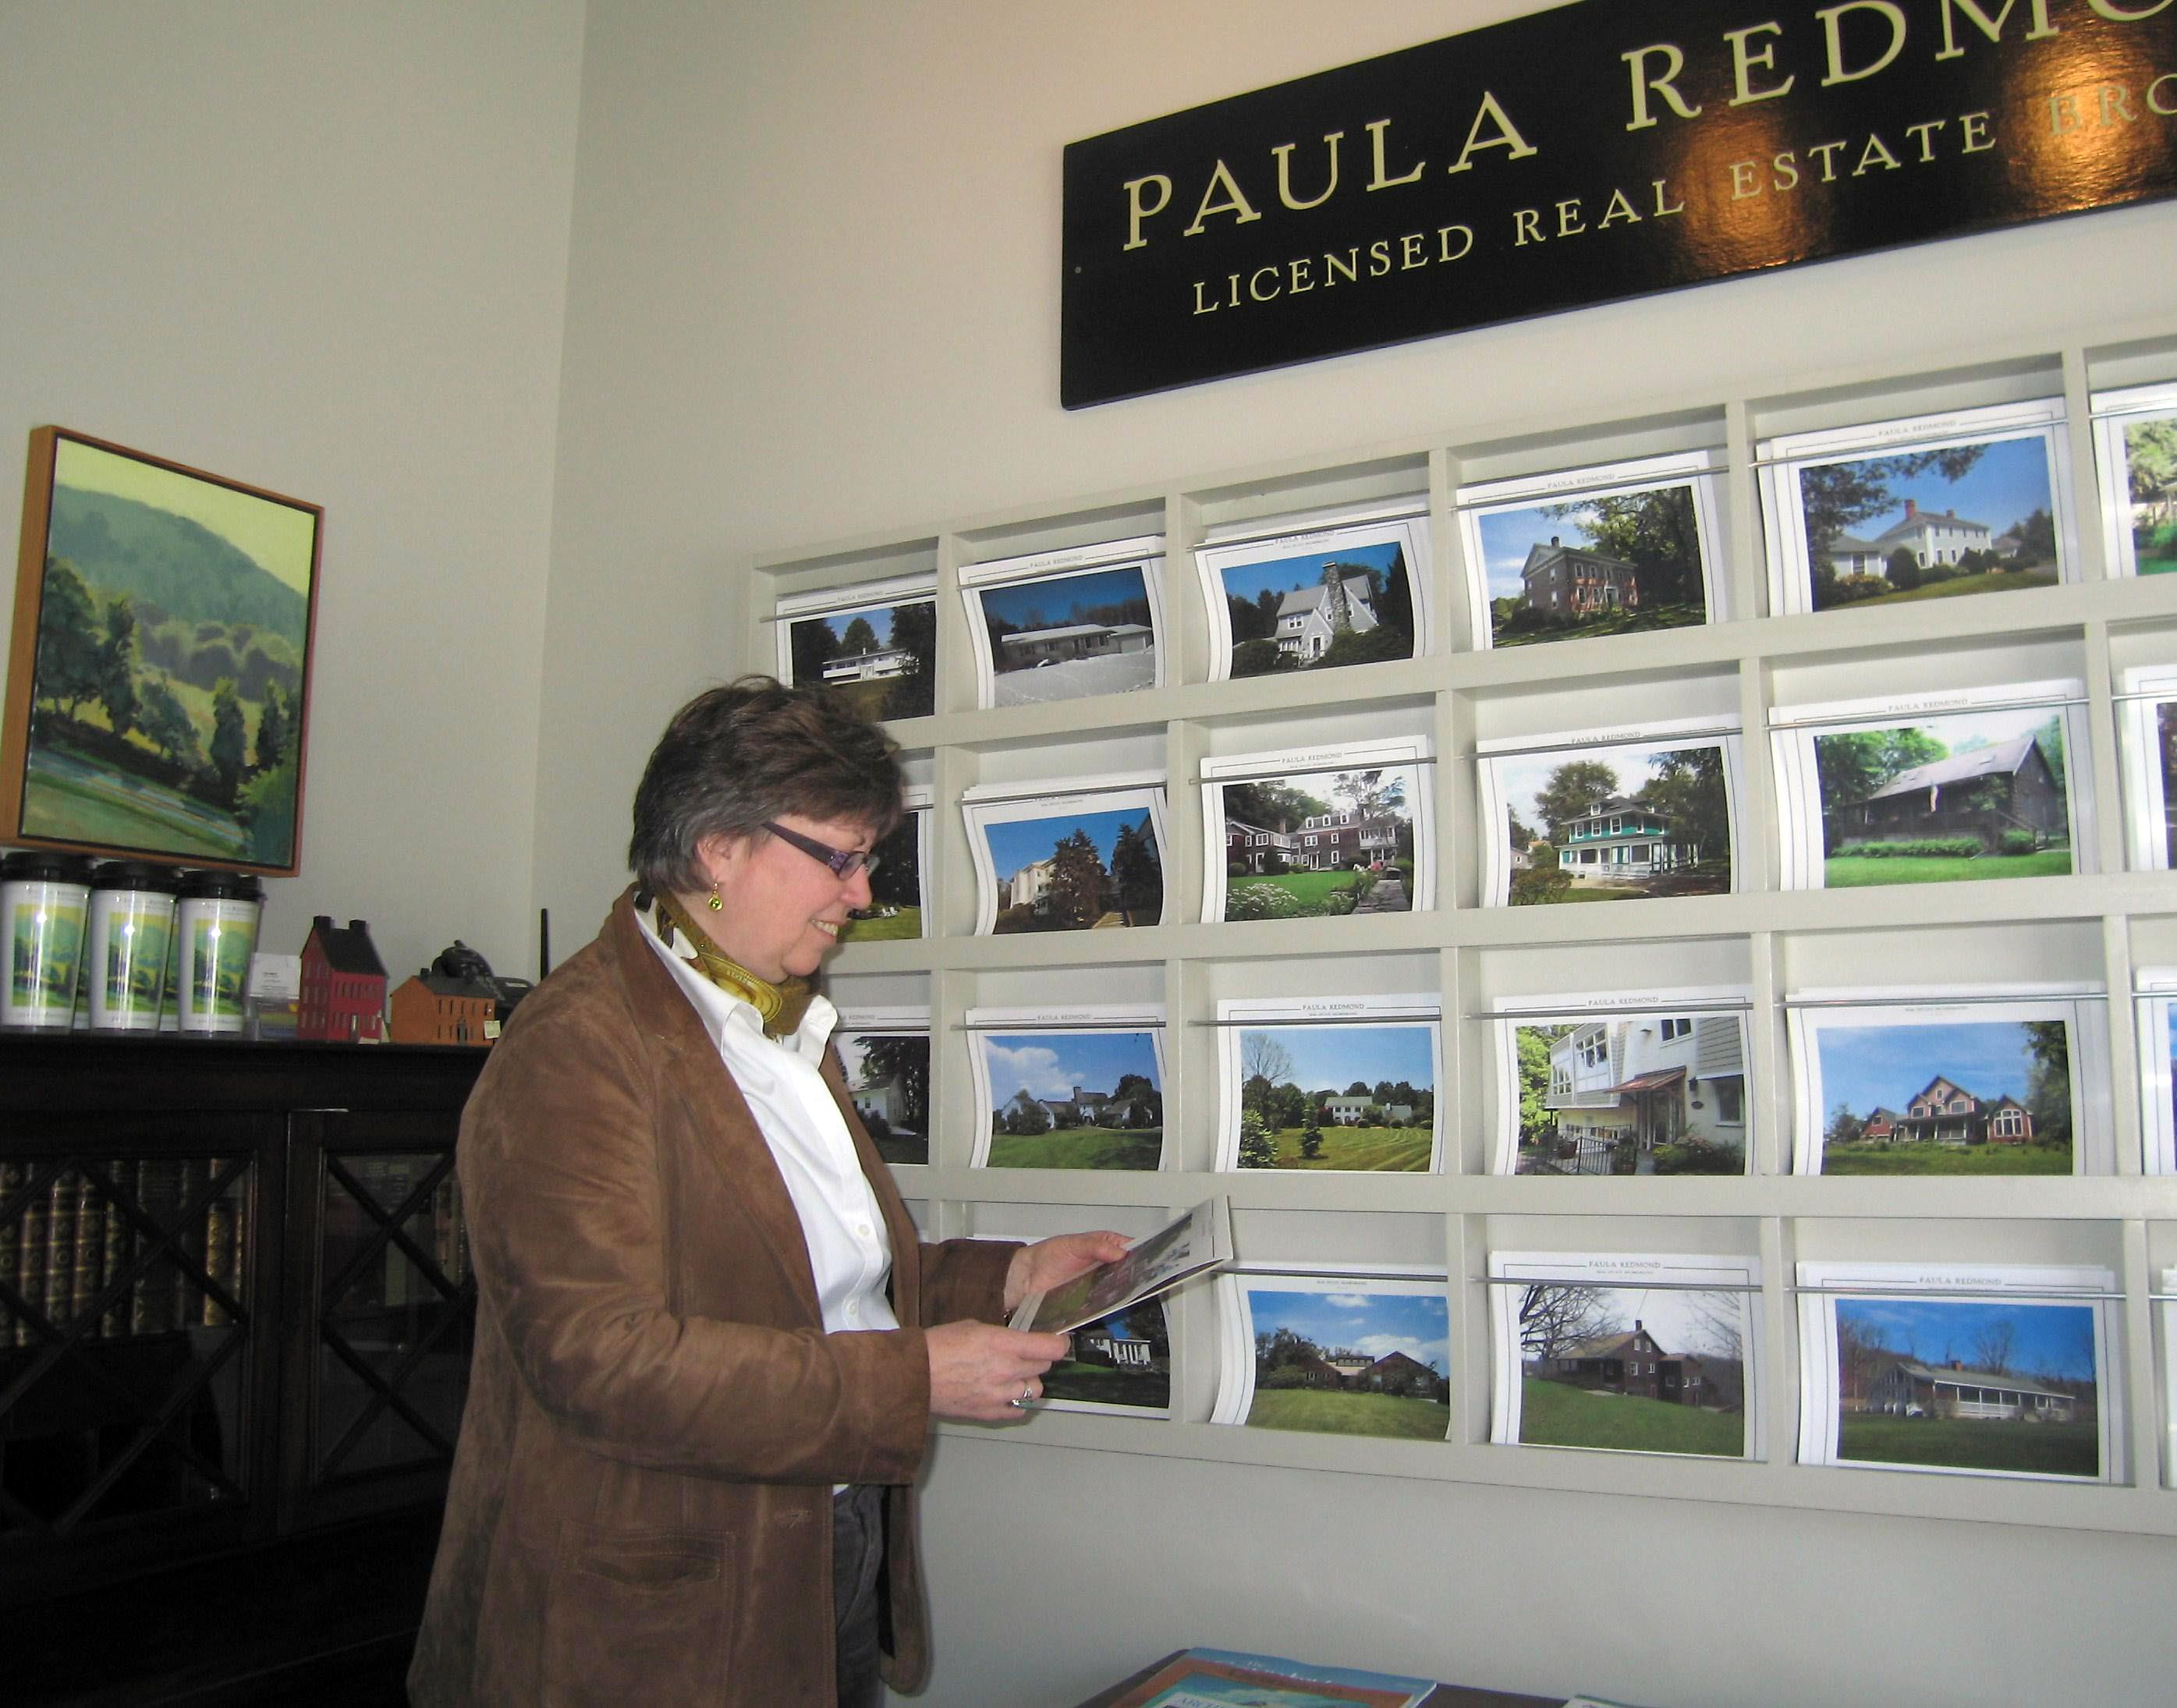 Paula Redmond's offices have an art gallery feel that fits right in among Rhinebeck's shops.